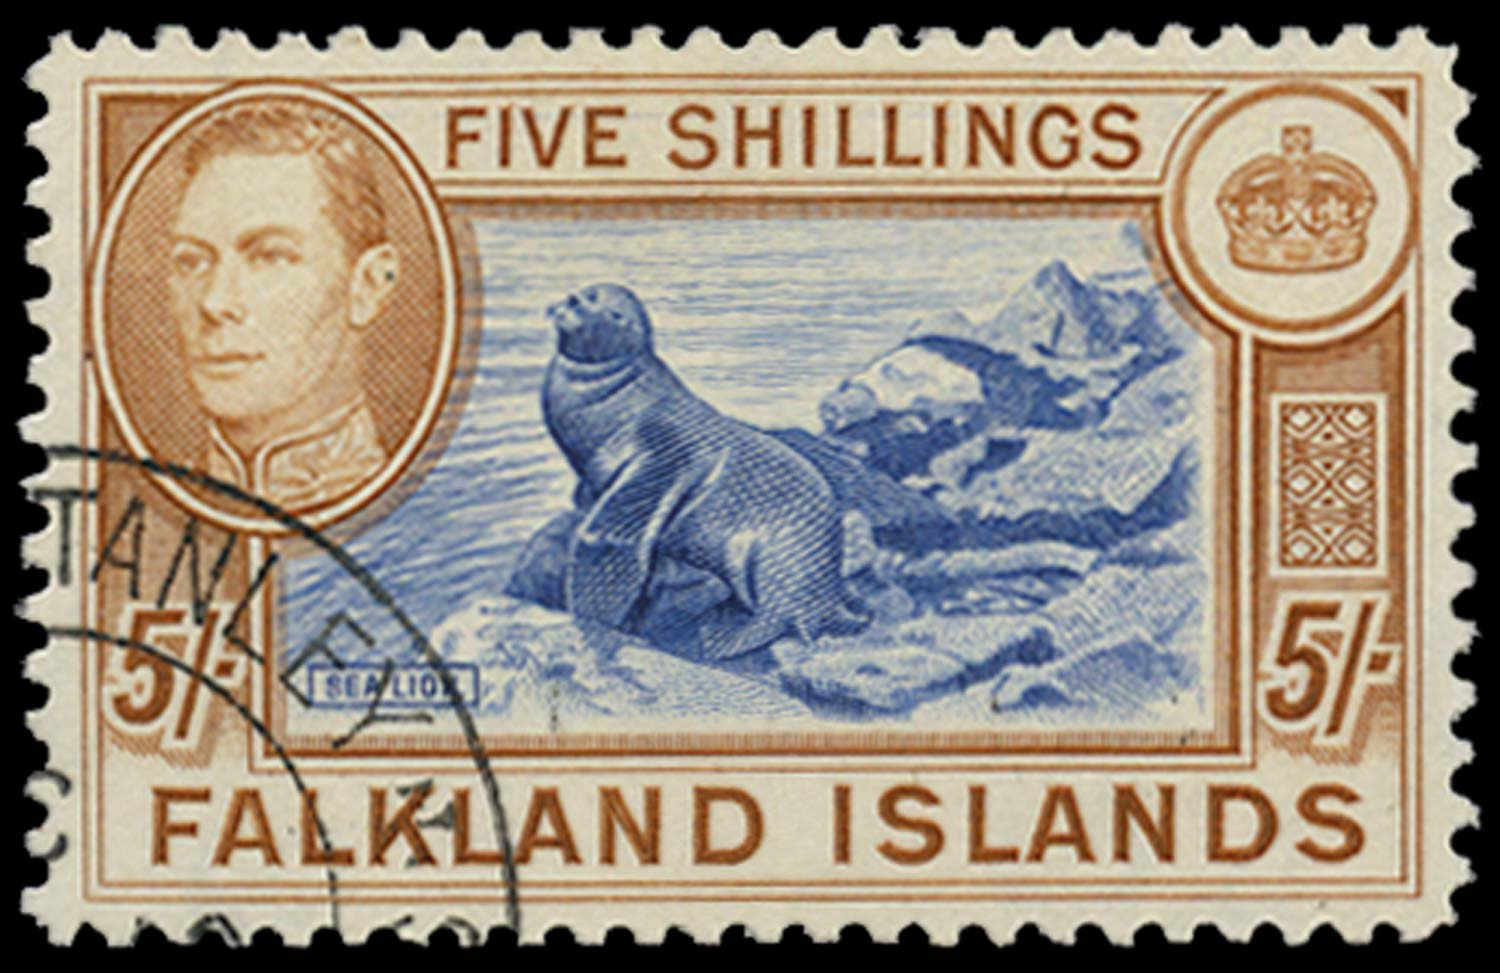 FALKLAND ISLANDS 1937  SG161 Used 5s blue and chestnut